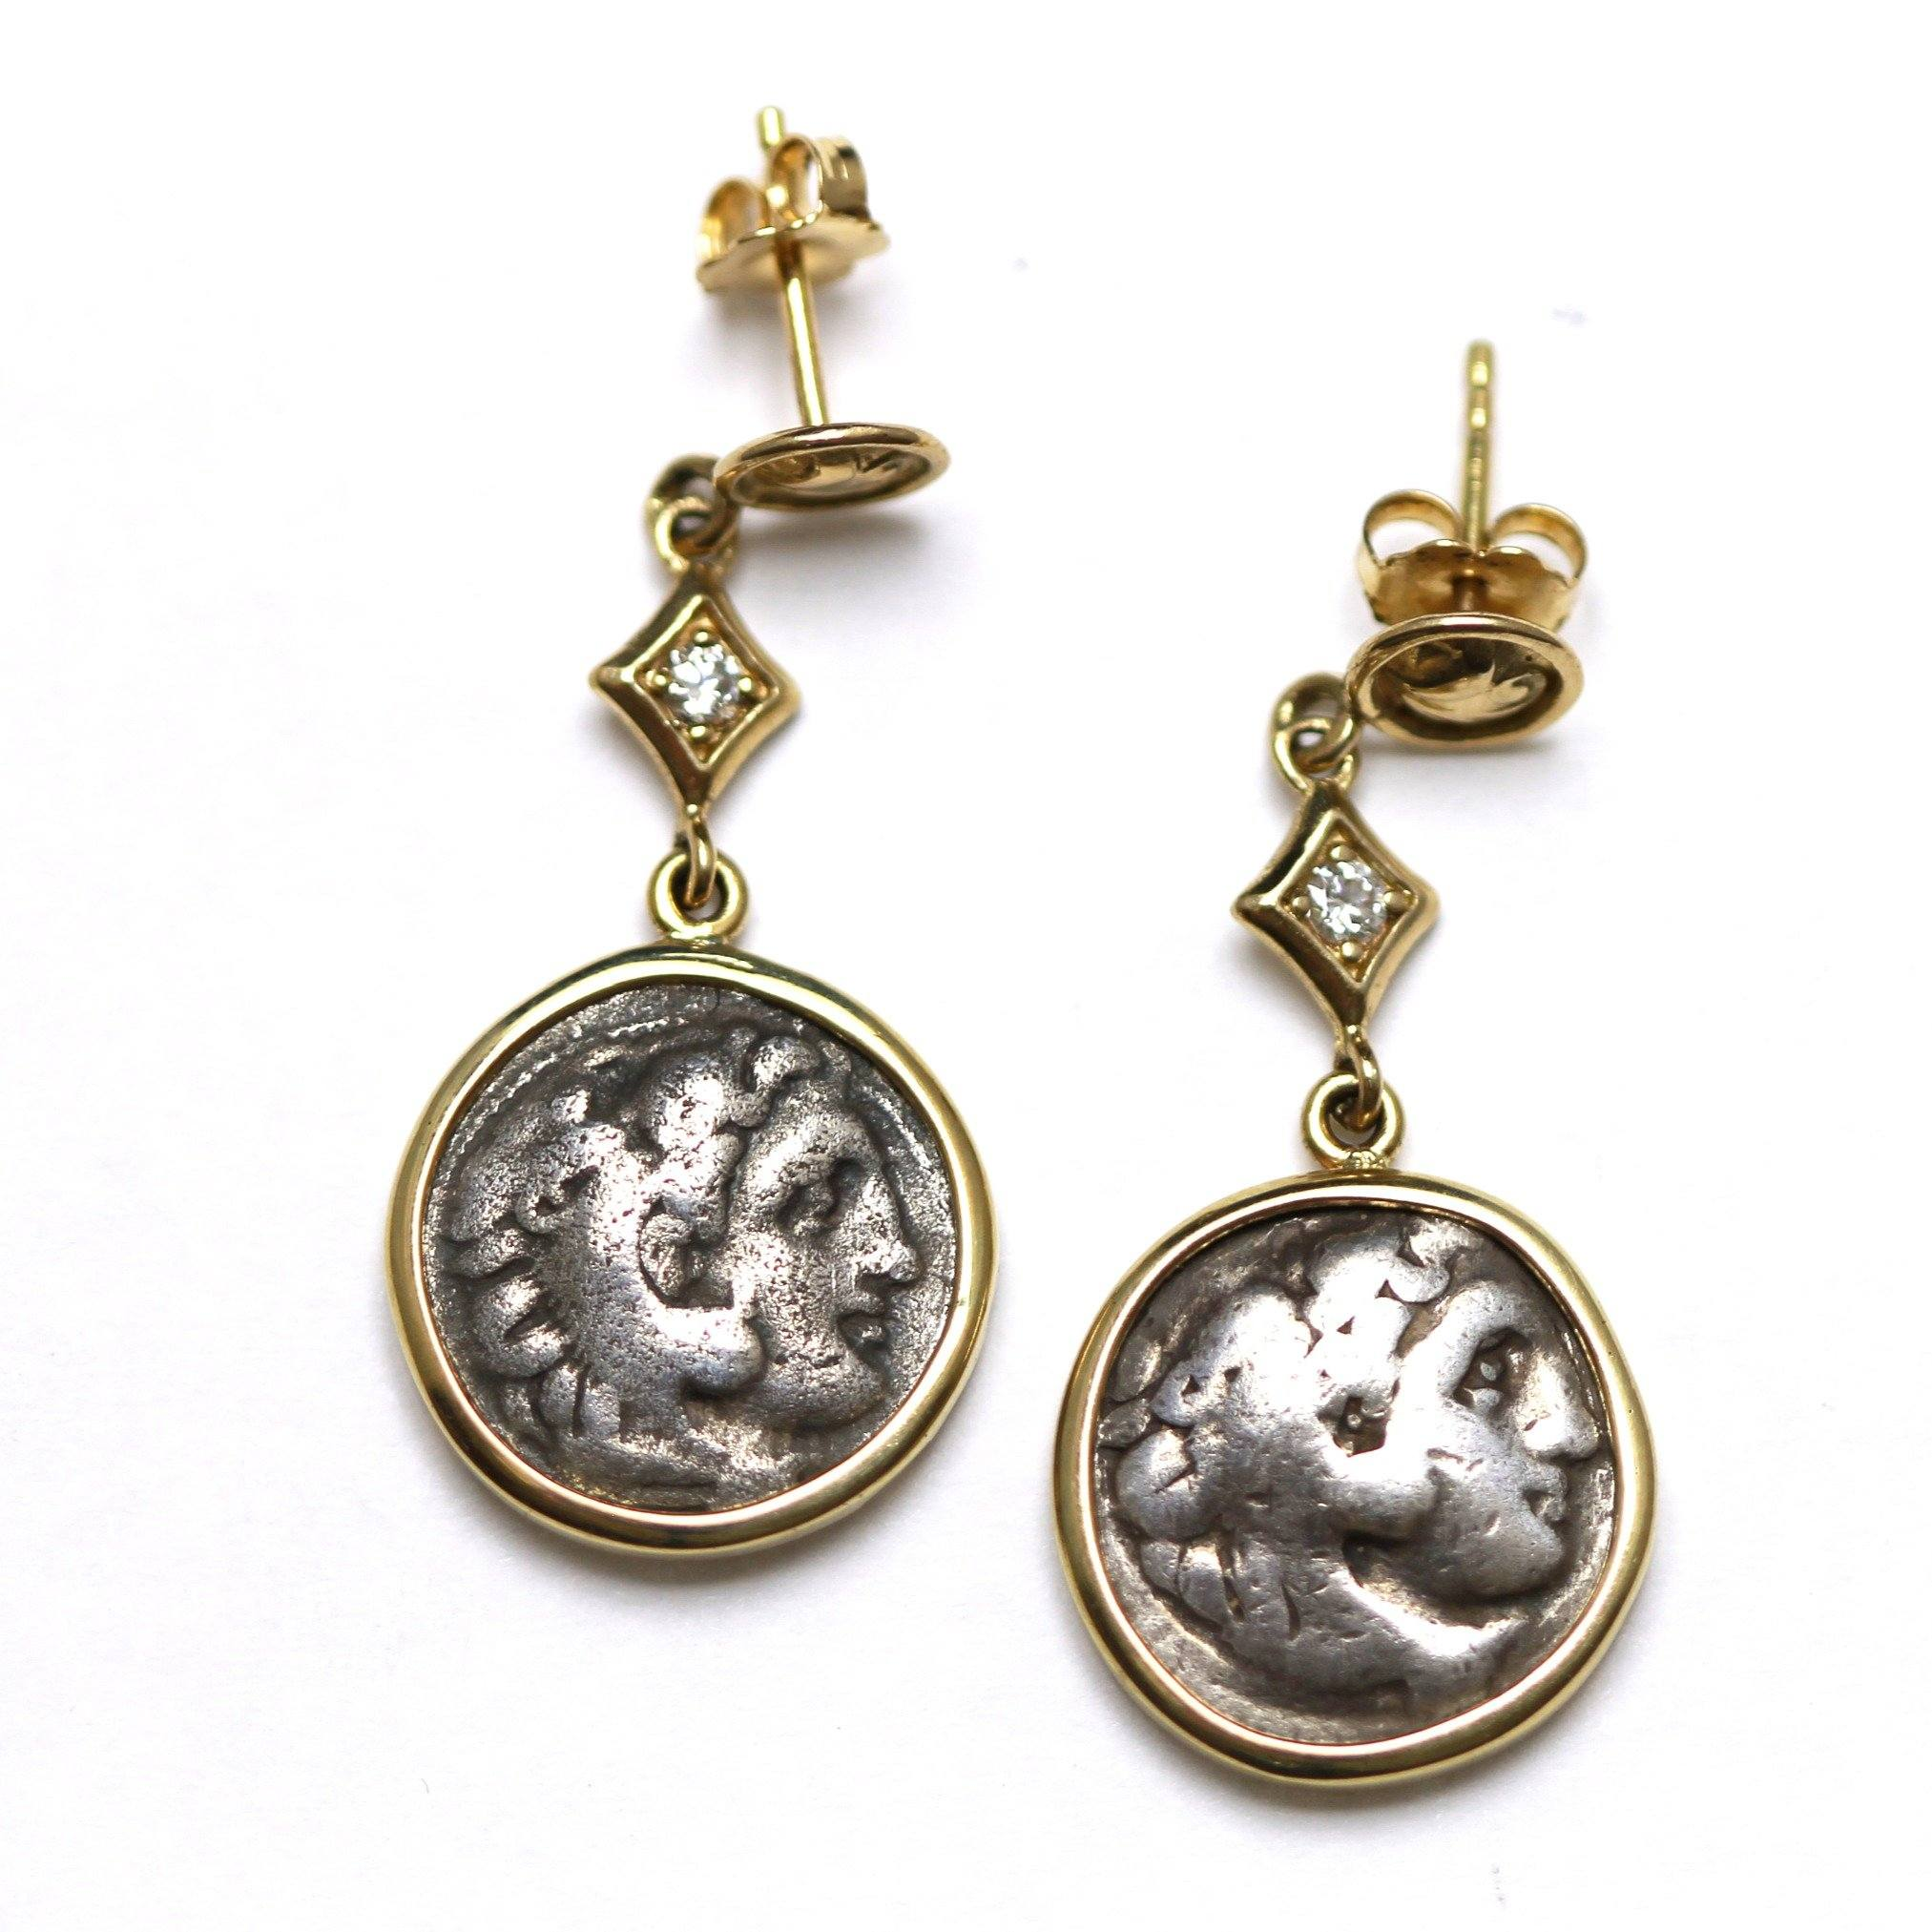 14K Gold Earrings, 0.08 CT Diamond Accents, Alexander the Great, Ancient Greek Drachm Coin, ID13381 - Erez Ancient Coin Jewelry